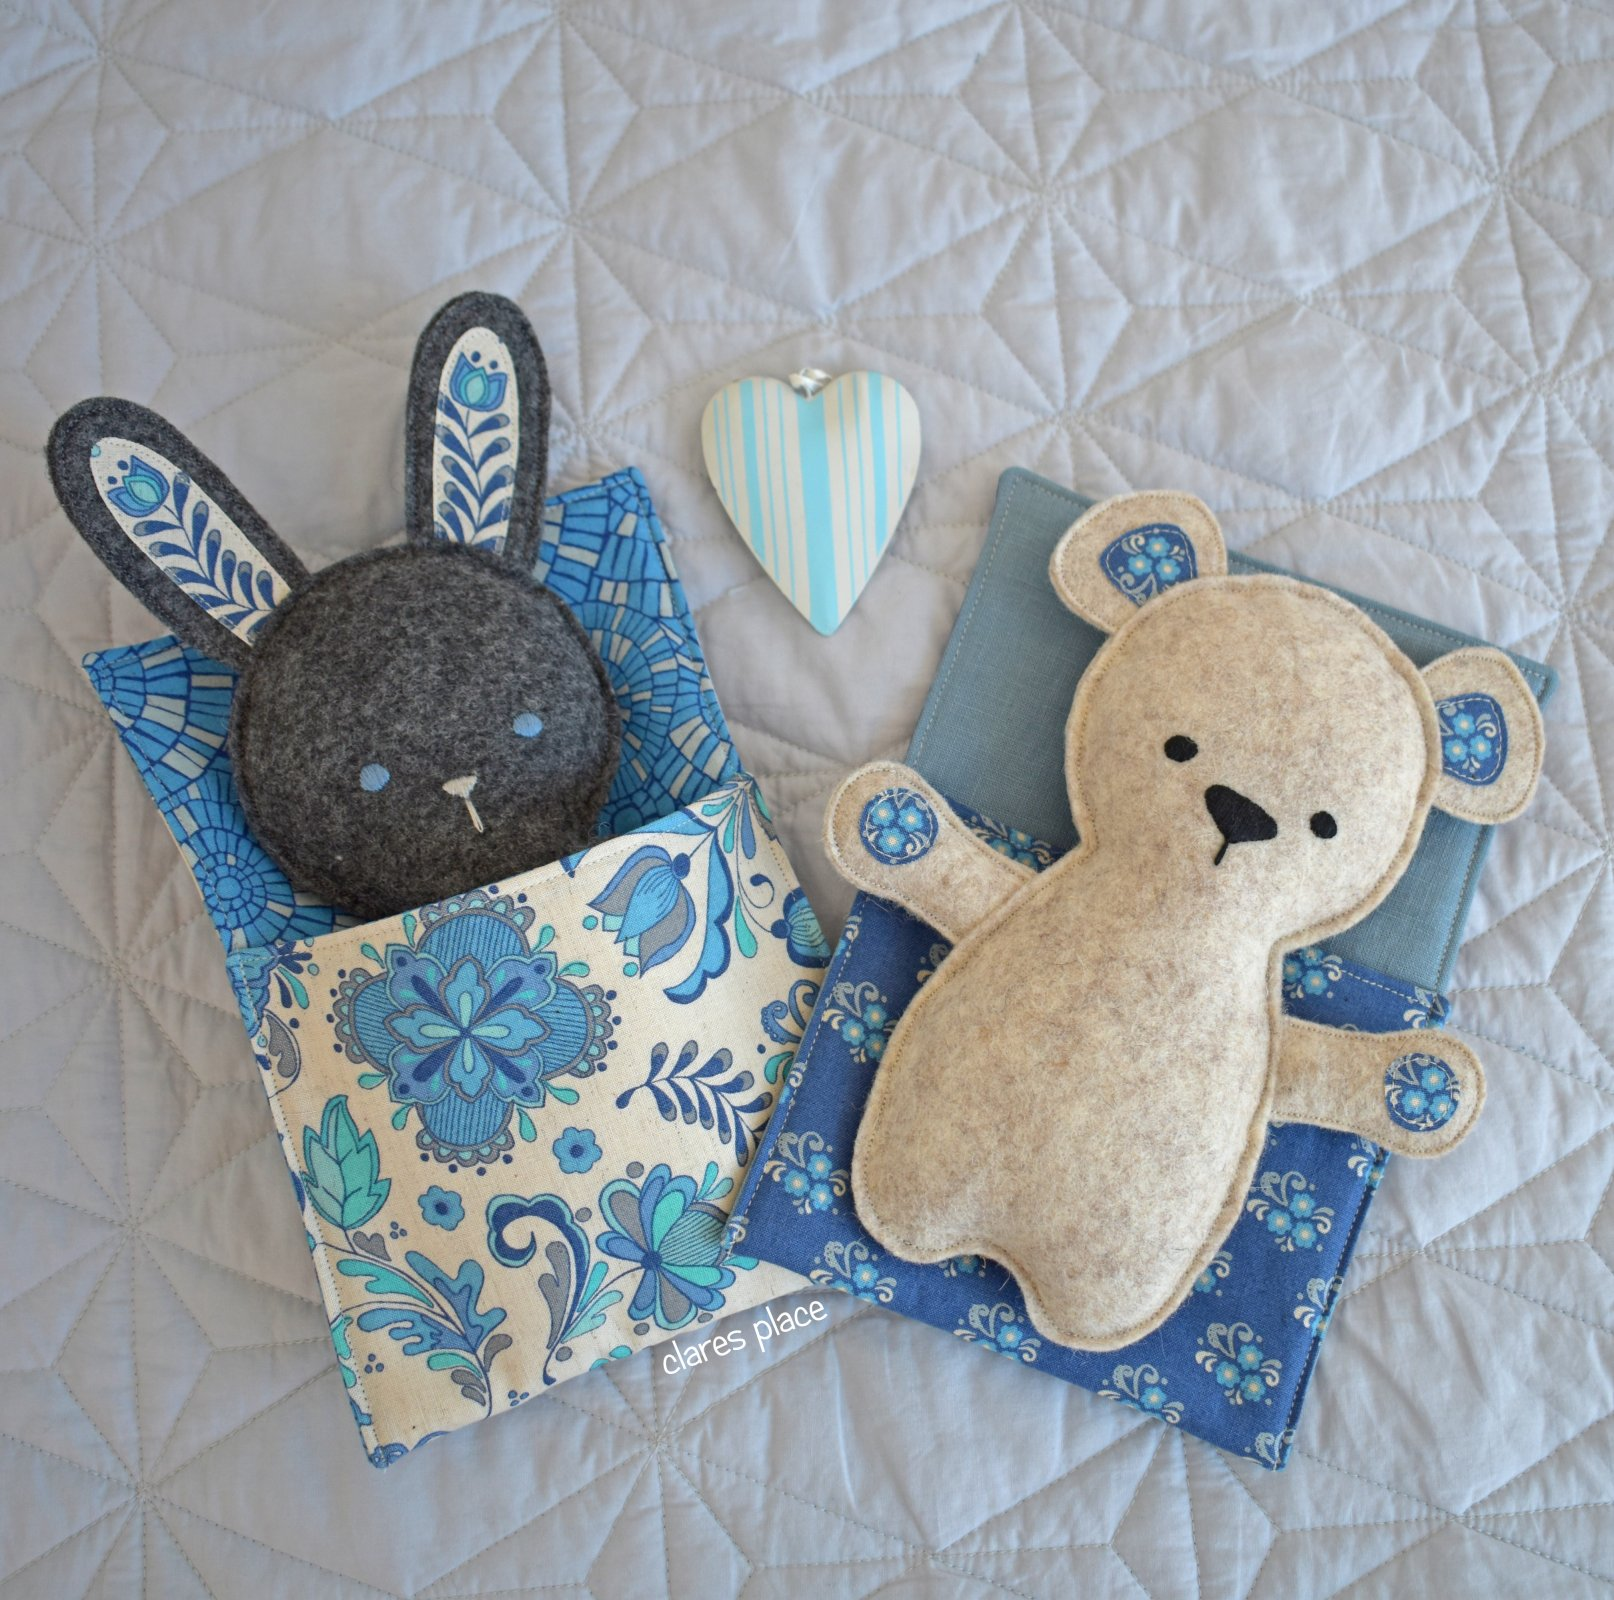 Bed Time Bunny and Bear softie by Clares Place 1